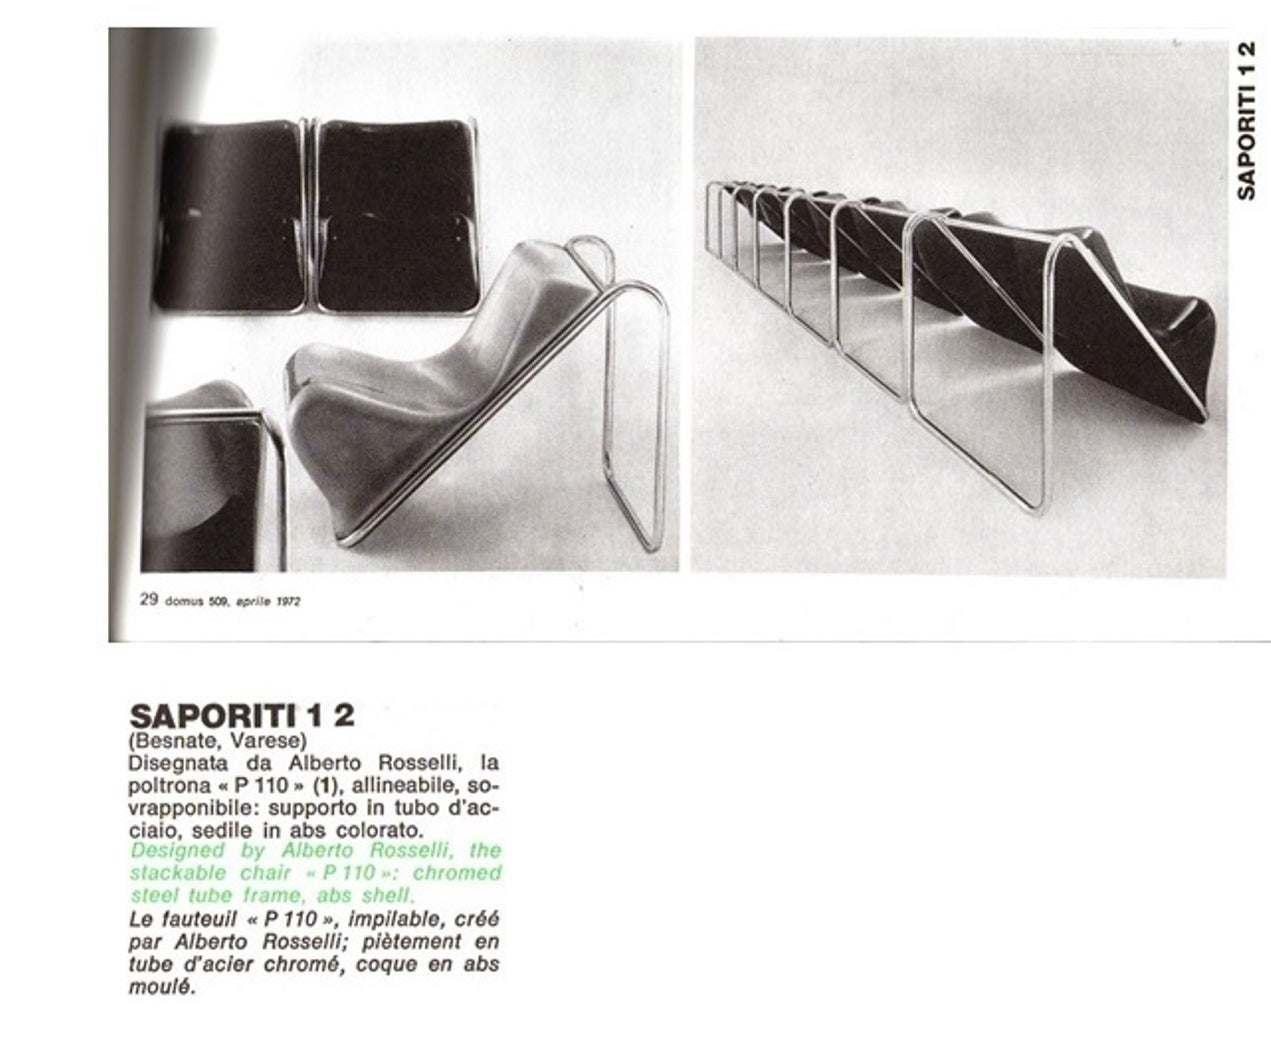 P110 Lounge Chairs by Rosselli, Partner of Gio Ponti, Exhibited at MoMA, NY 6